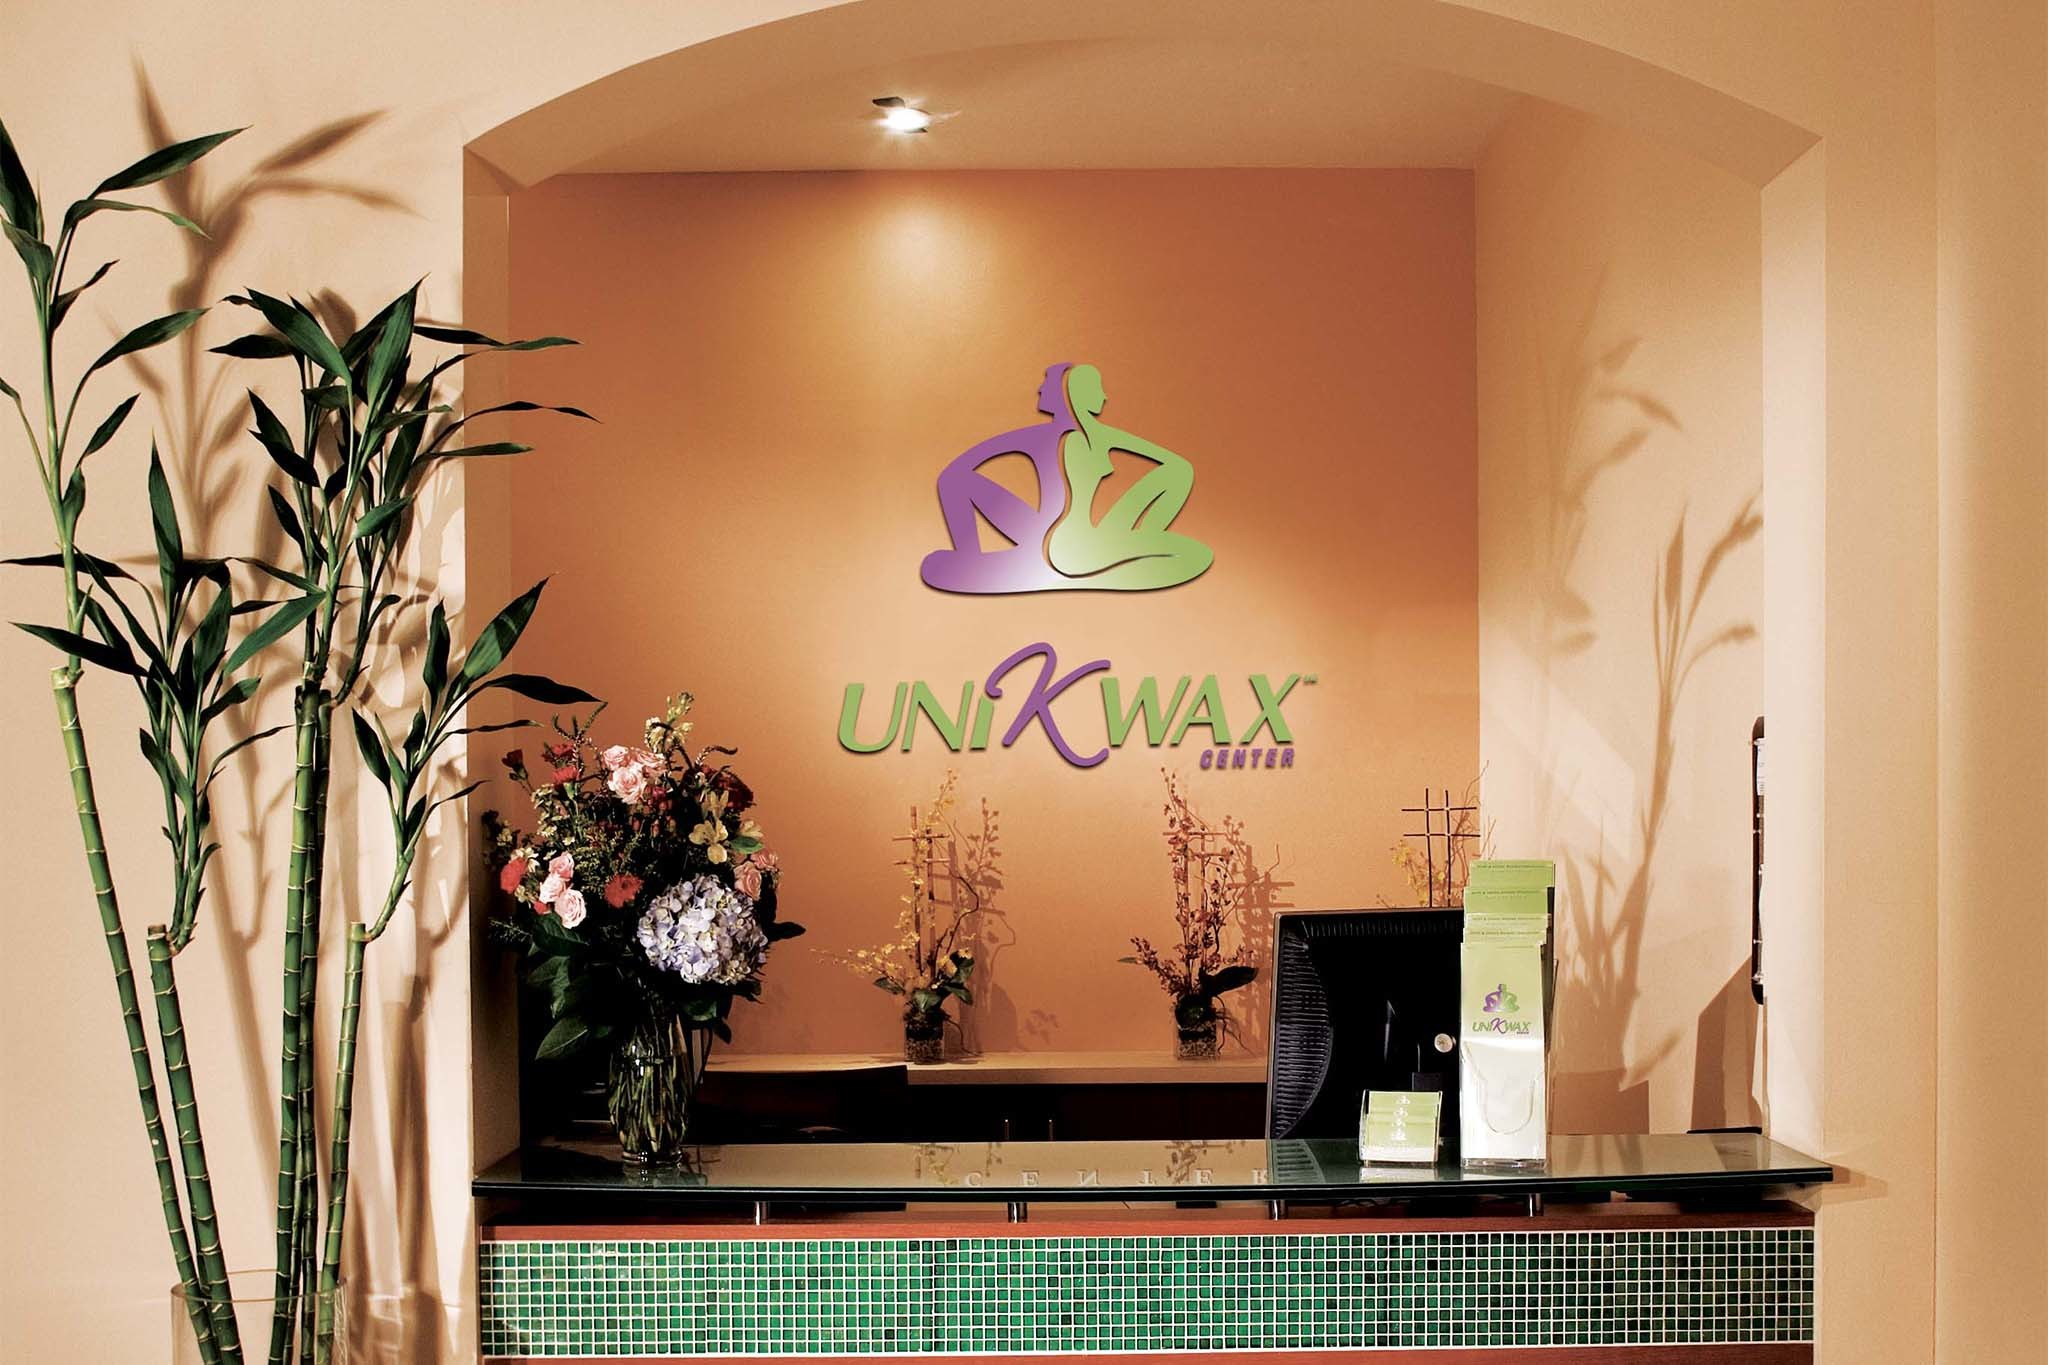 Most hygienic: Uni K Wax Center